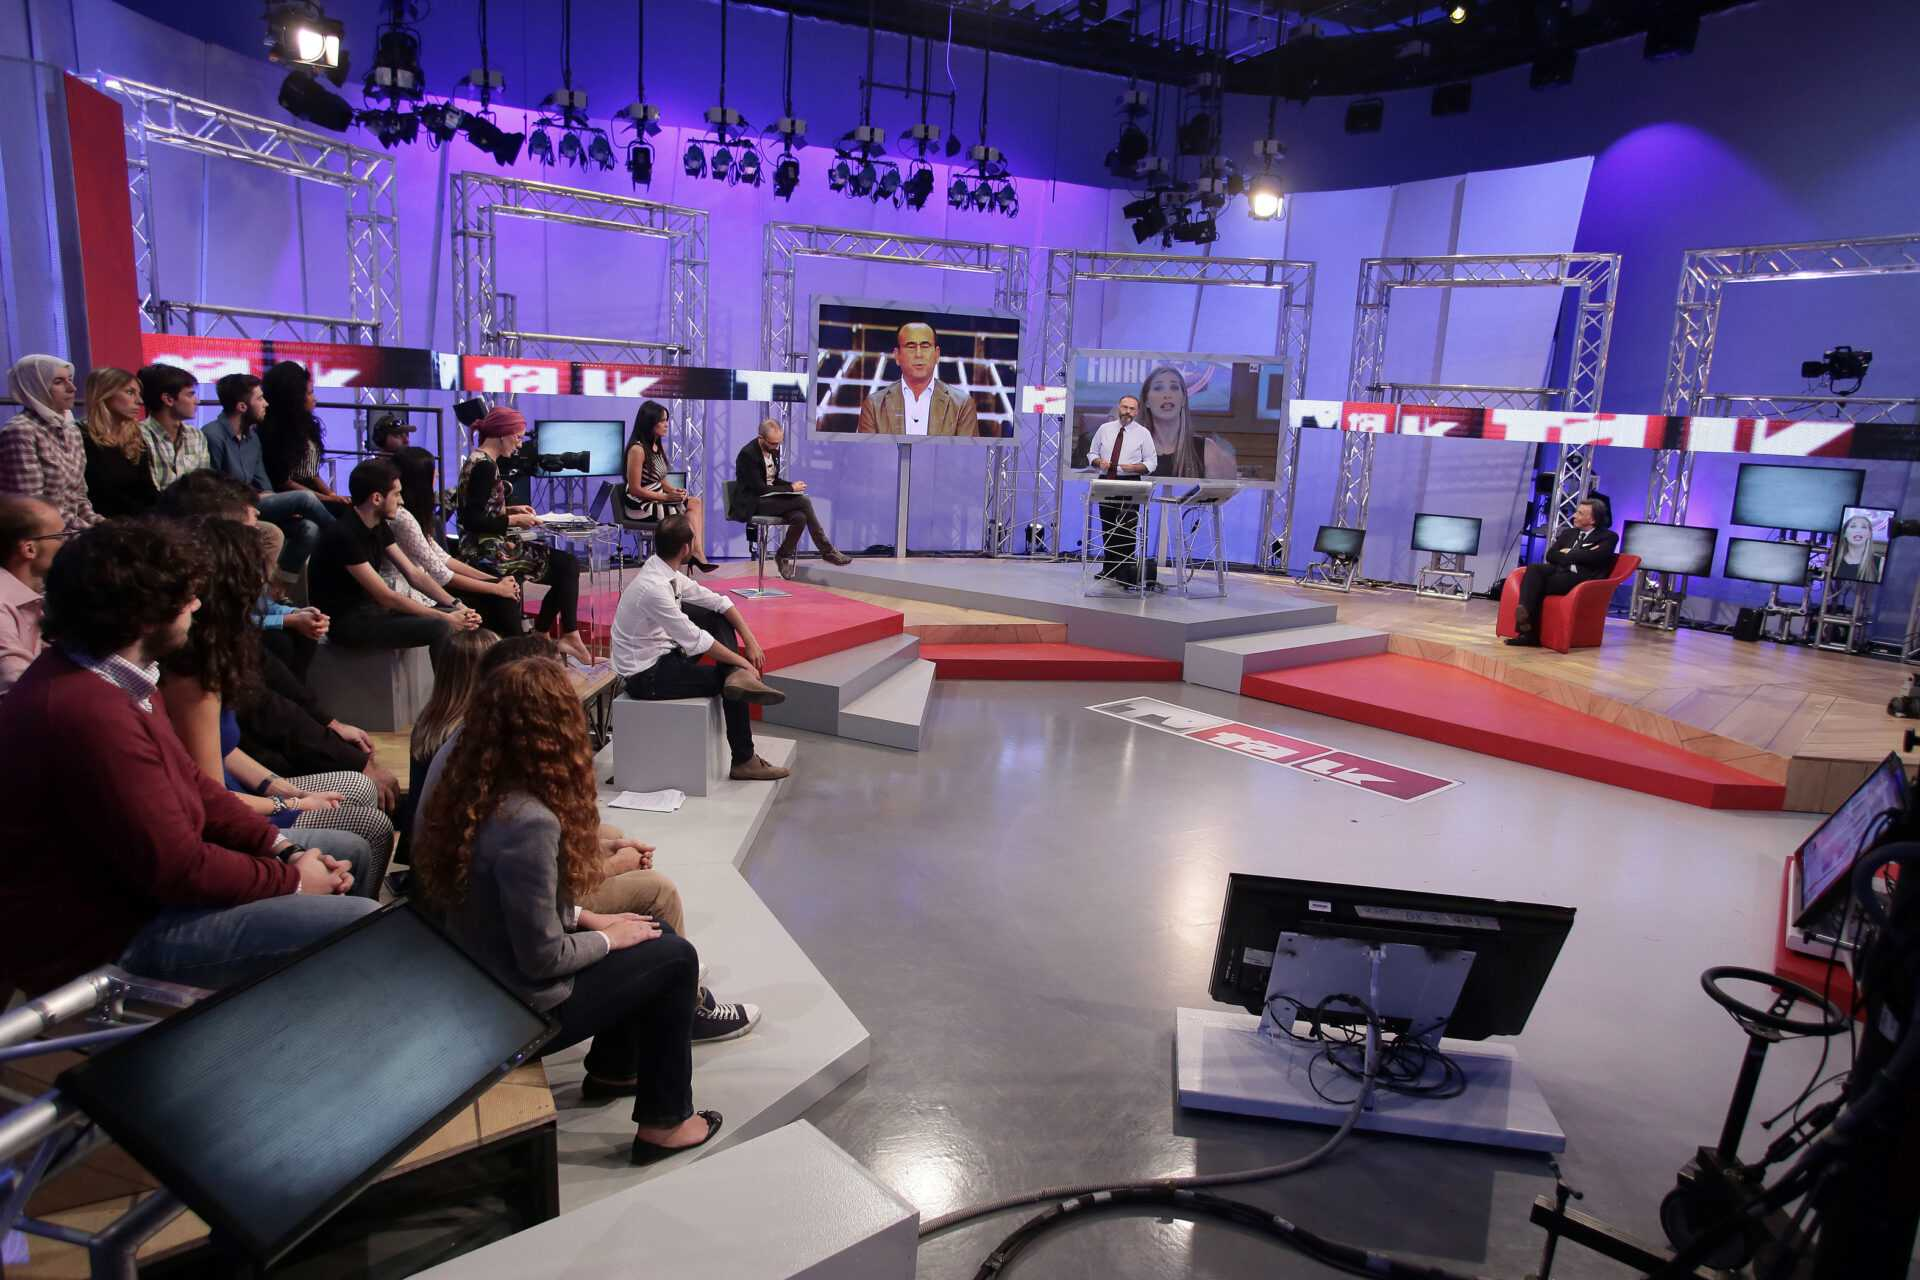 Sabato 19 Ottobre secondo appuntamento con TV Talk su Rai Tre | Digitale terrestre: Dtti.it